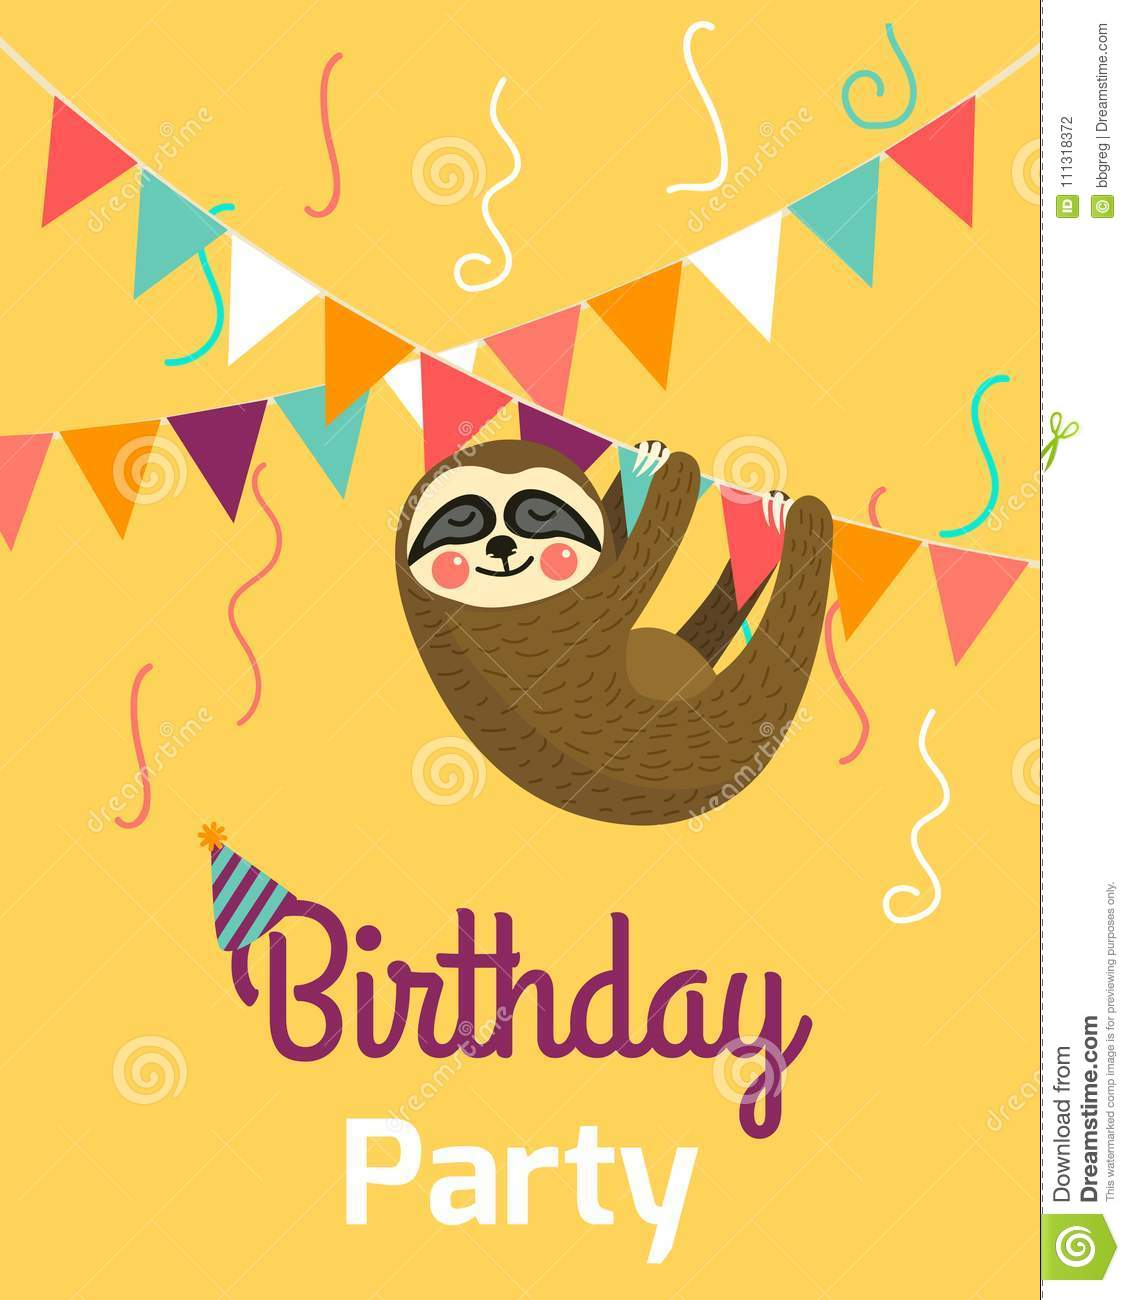 Happy birthday greeting templates invitation cards to the party download comp stopboris Images